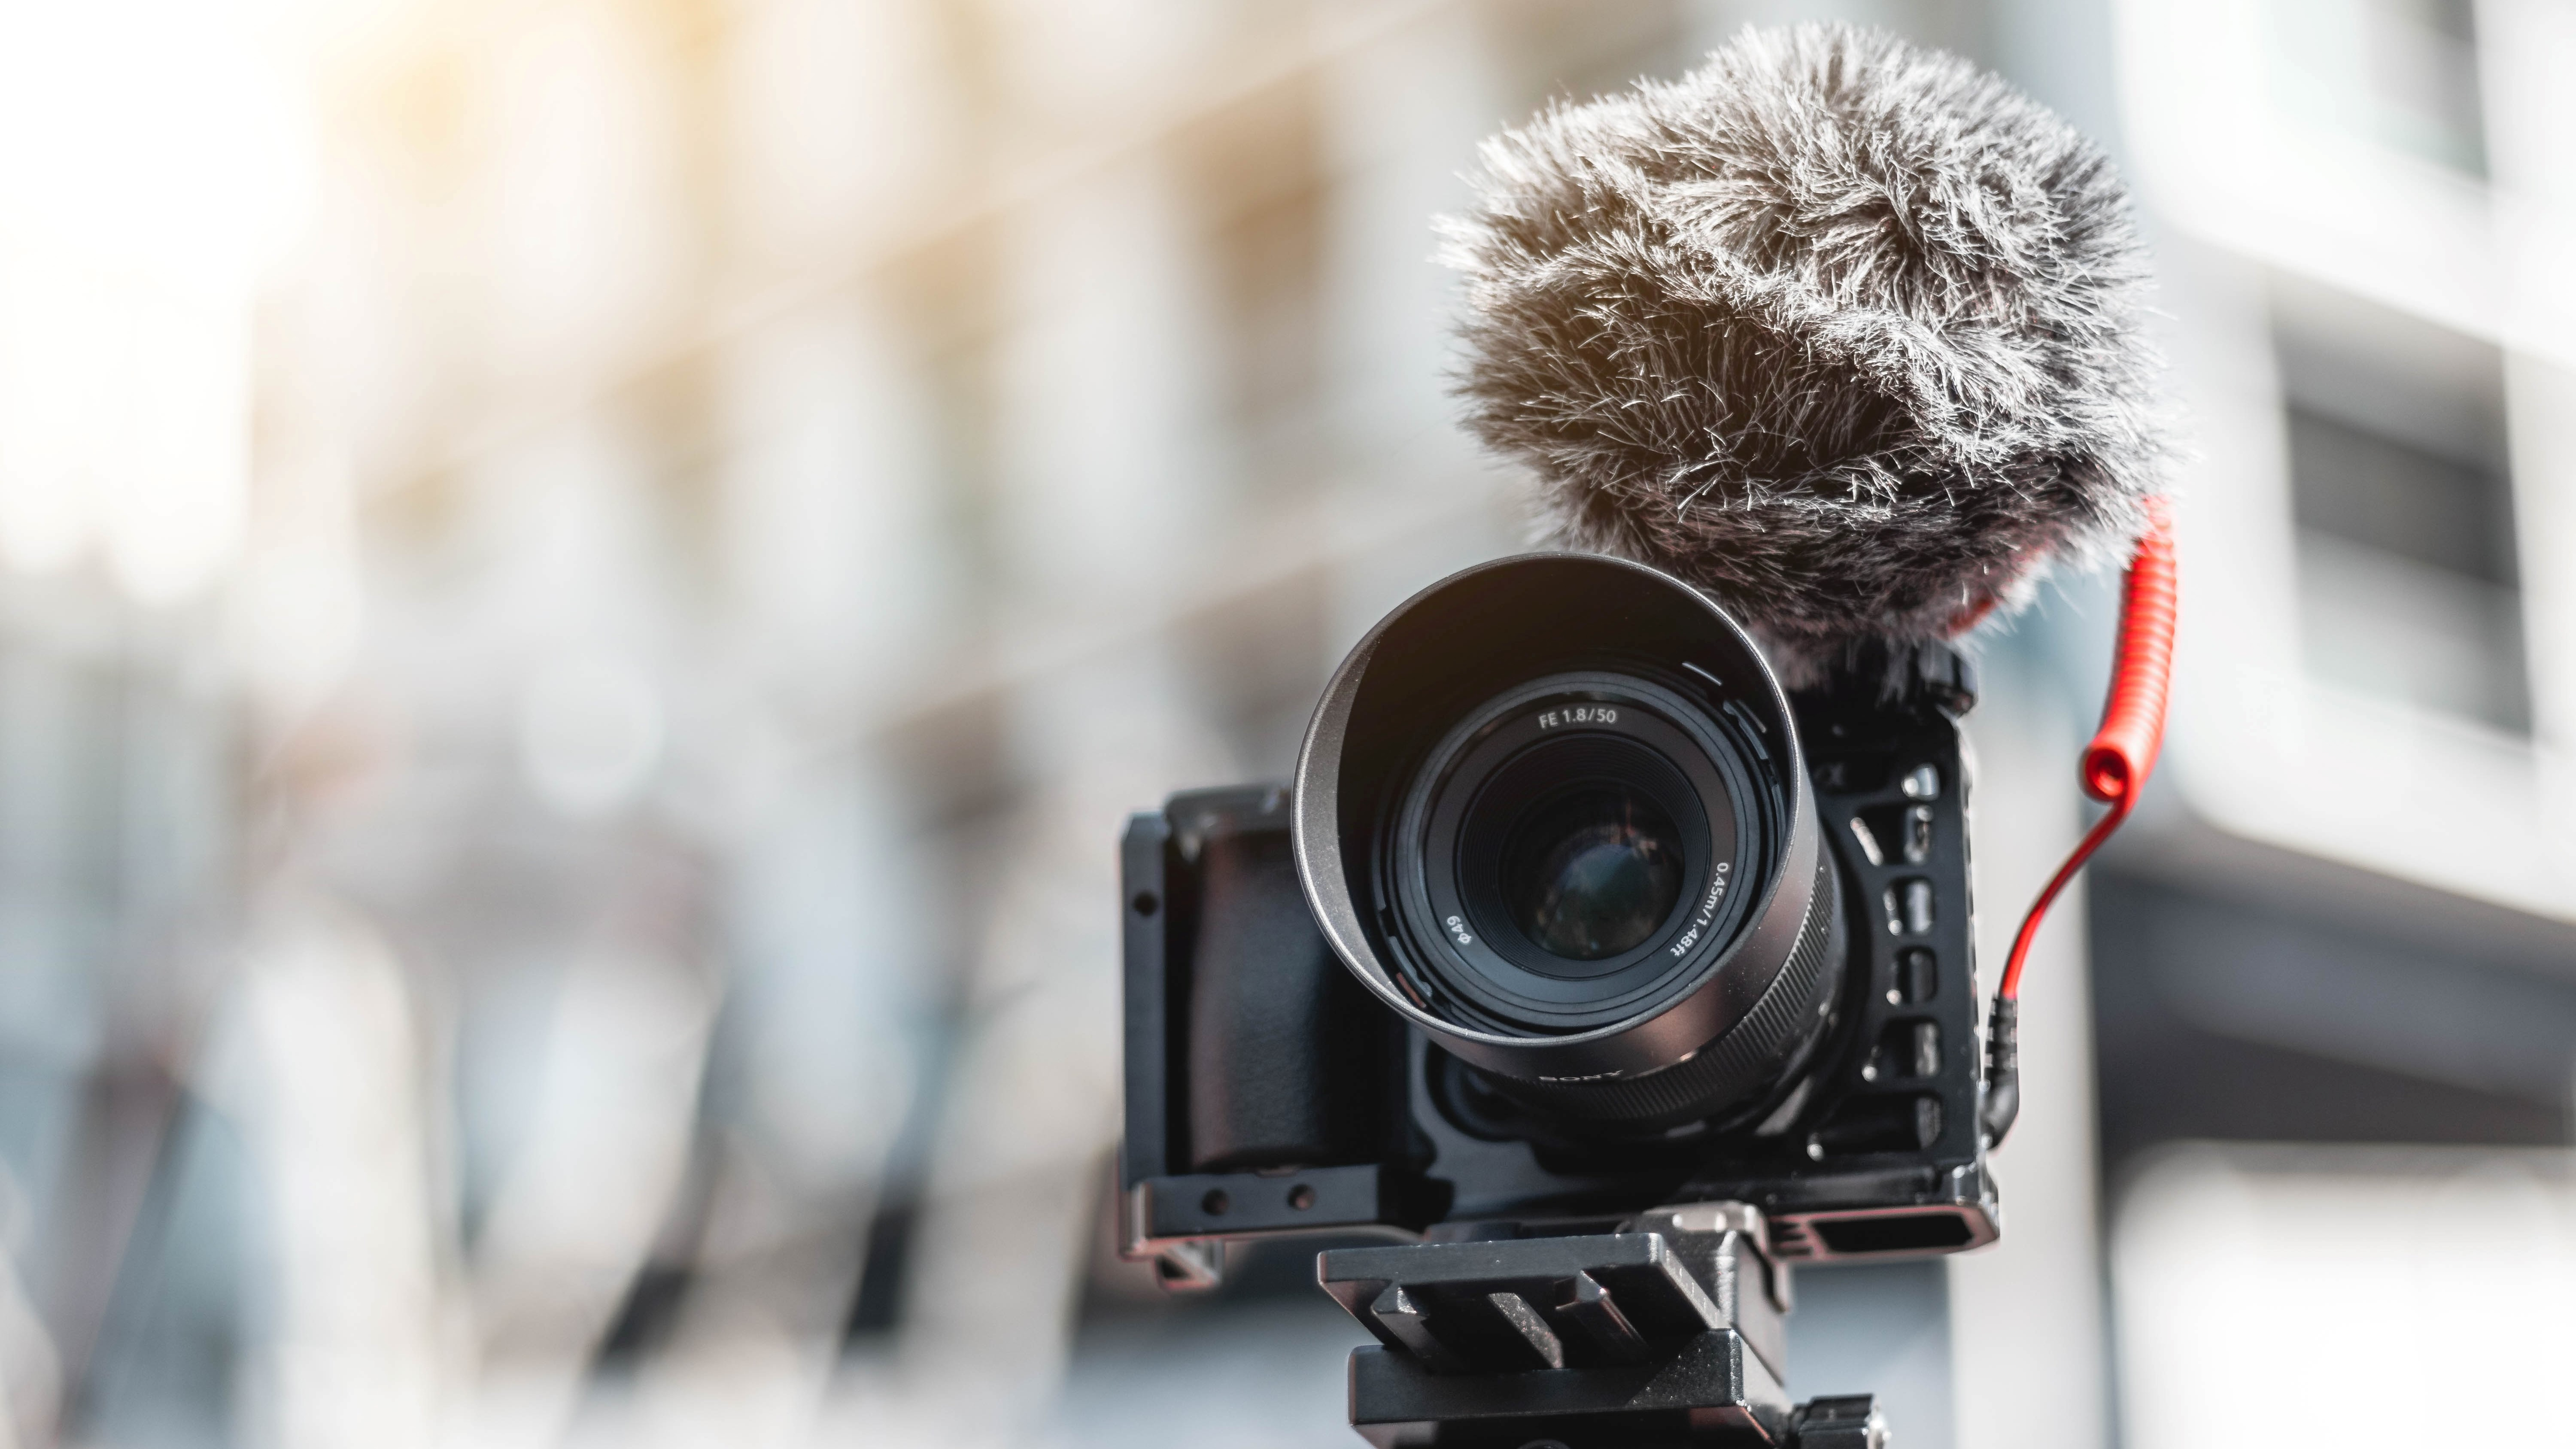 Tips for Producing Your Own B2B Video (From a Pro)